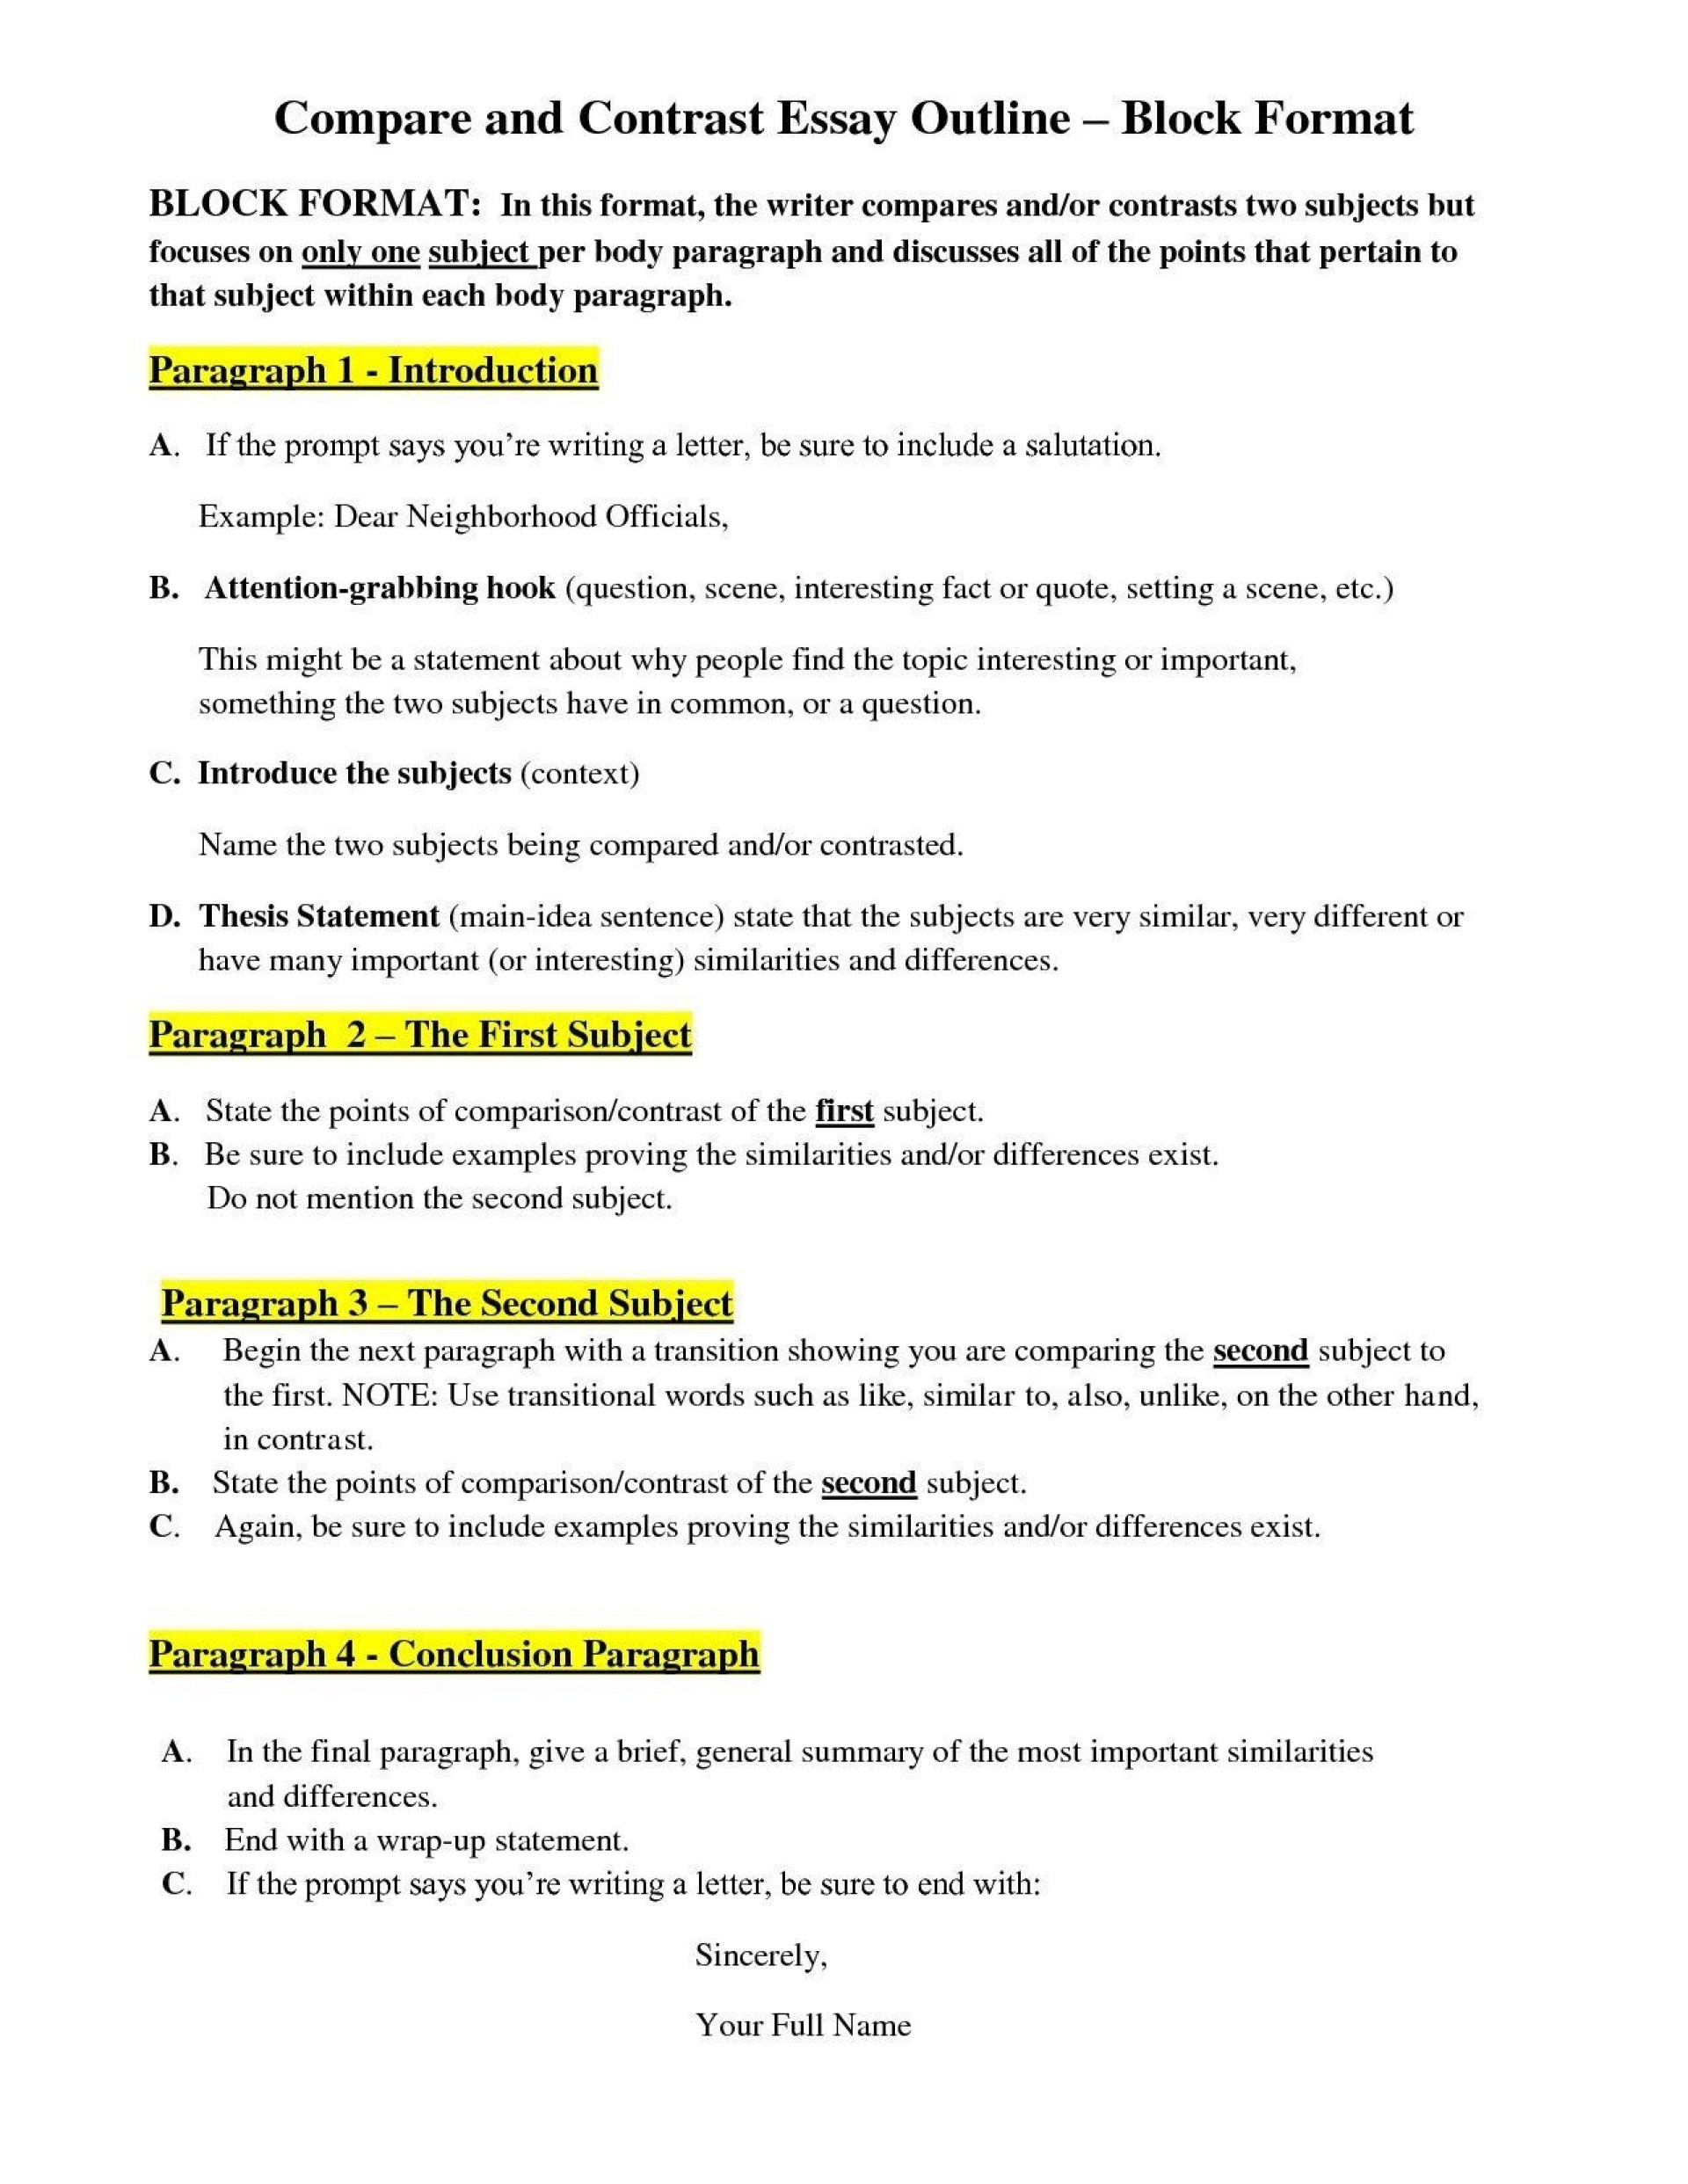 014 Essay Examplempare Andntrastmparison Best Examples Of Scenario In 6th Grade An Goo 3rd Food 5th Middle School Block Format Pdf High 4th Vs Striking Compare And Contrast Example For College Outline 1920